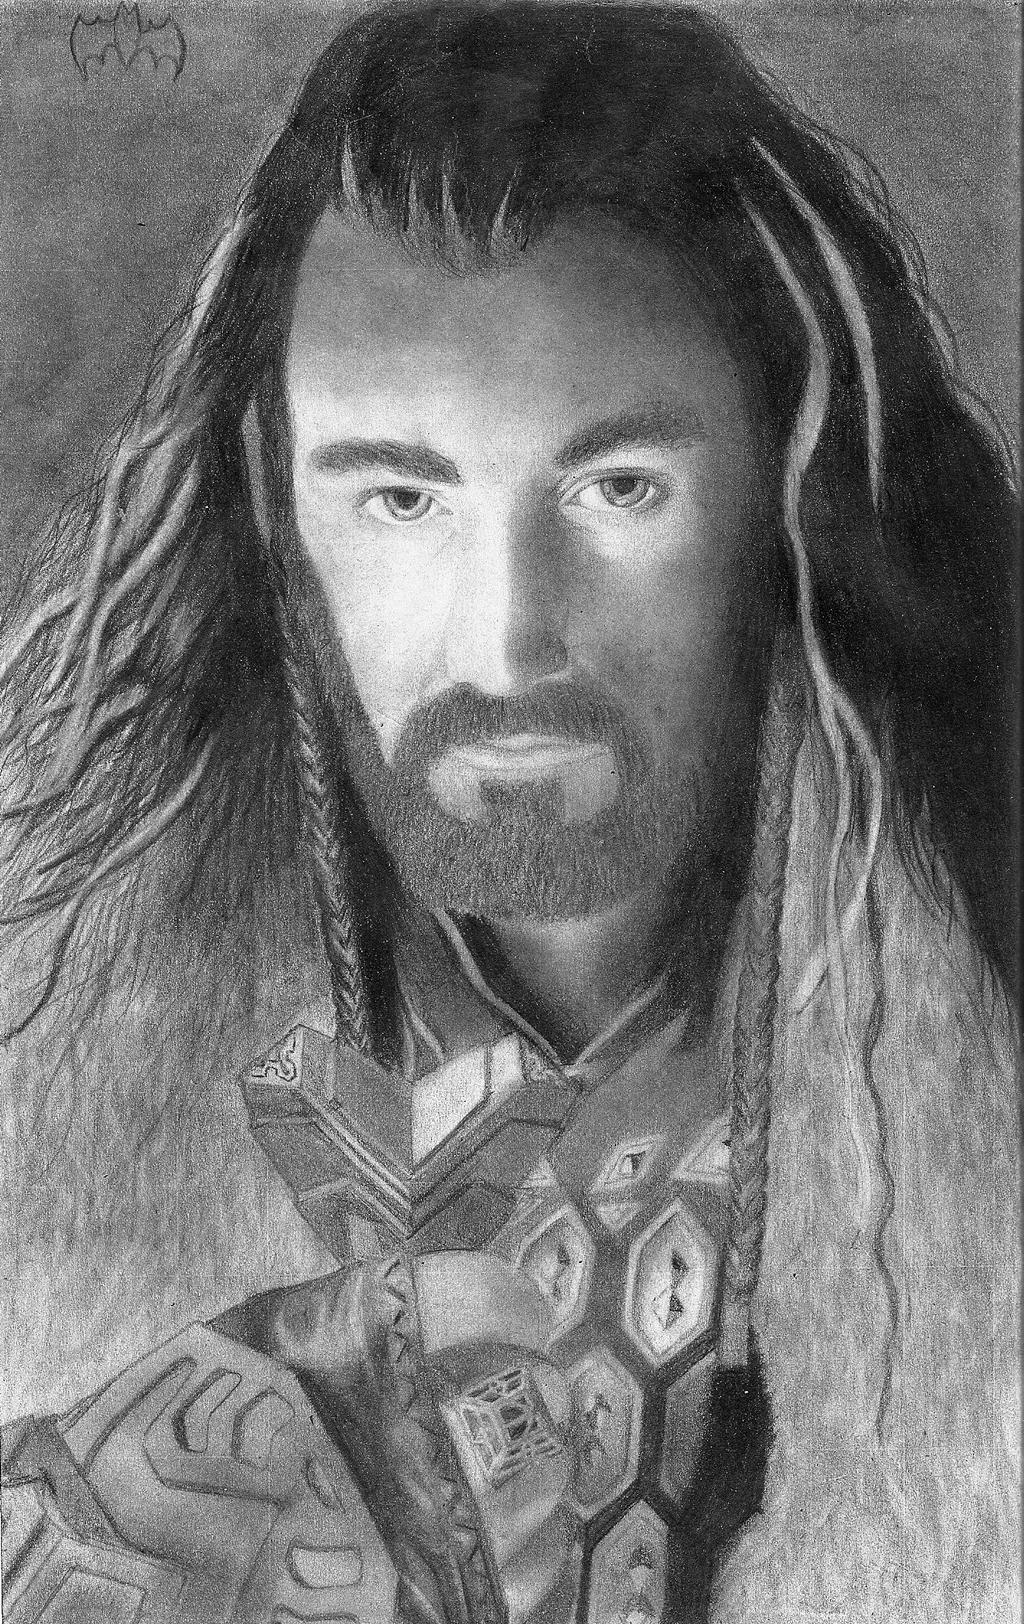 The Hobbit project: Thorin Oakenshield by IronMandy